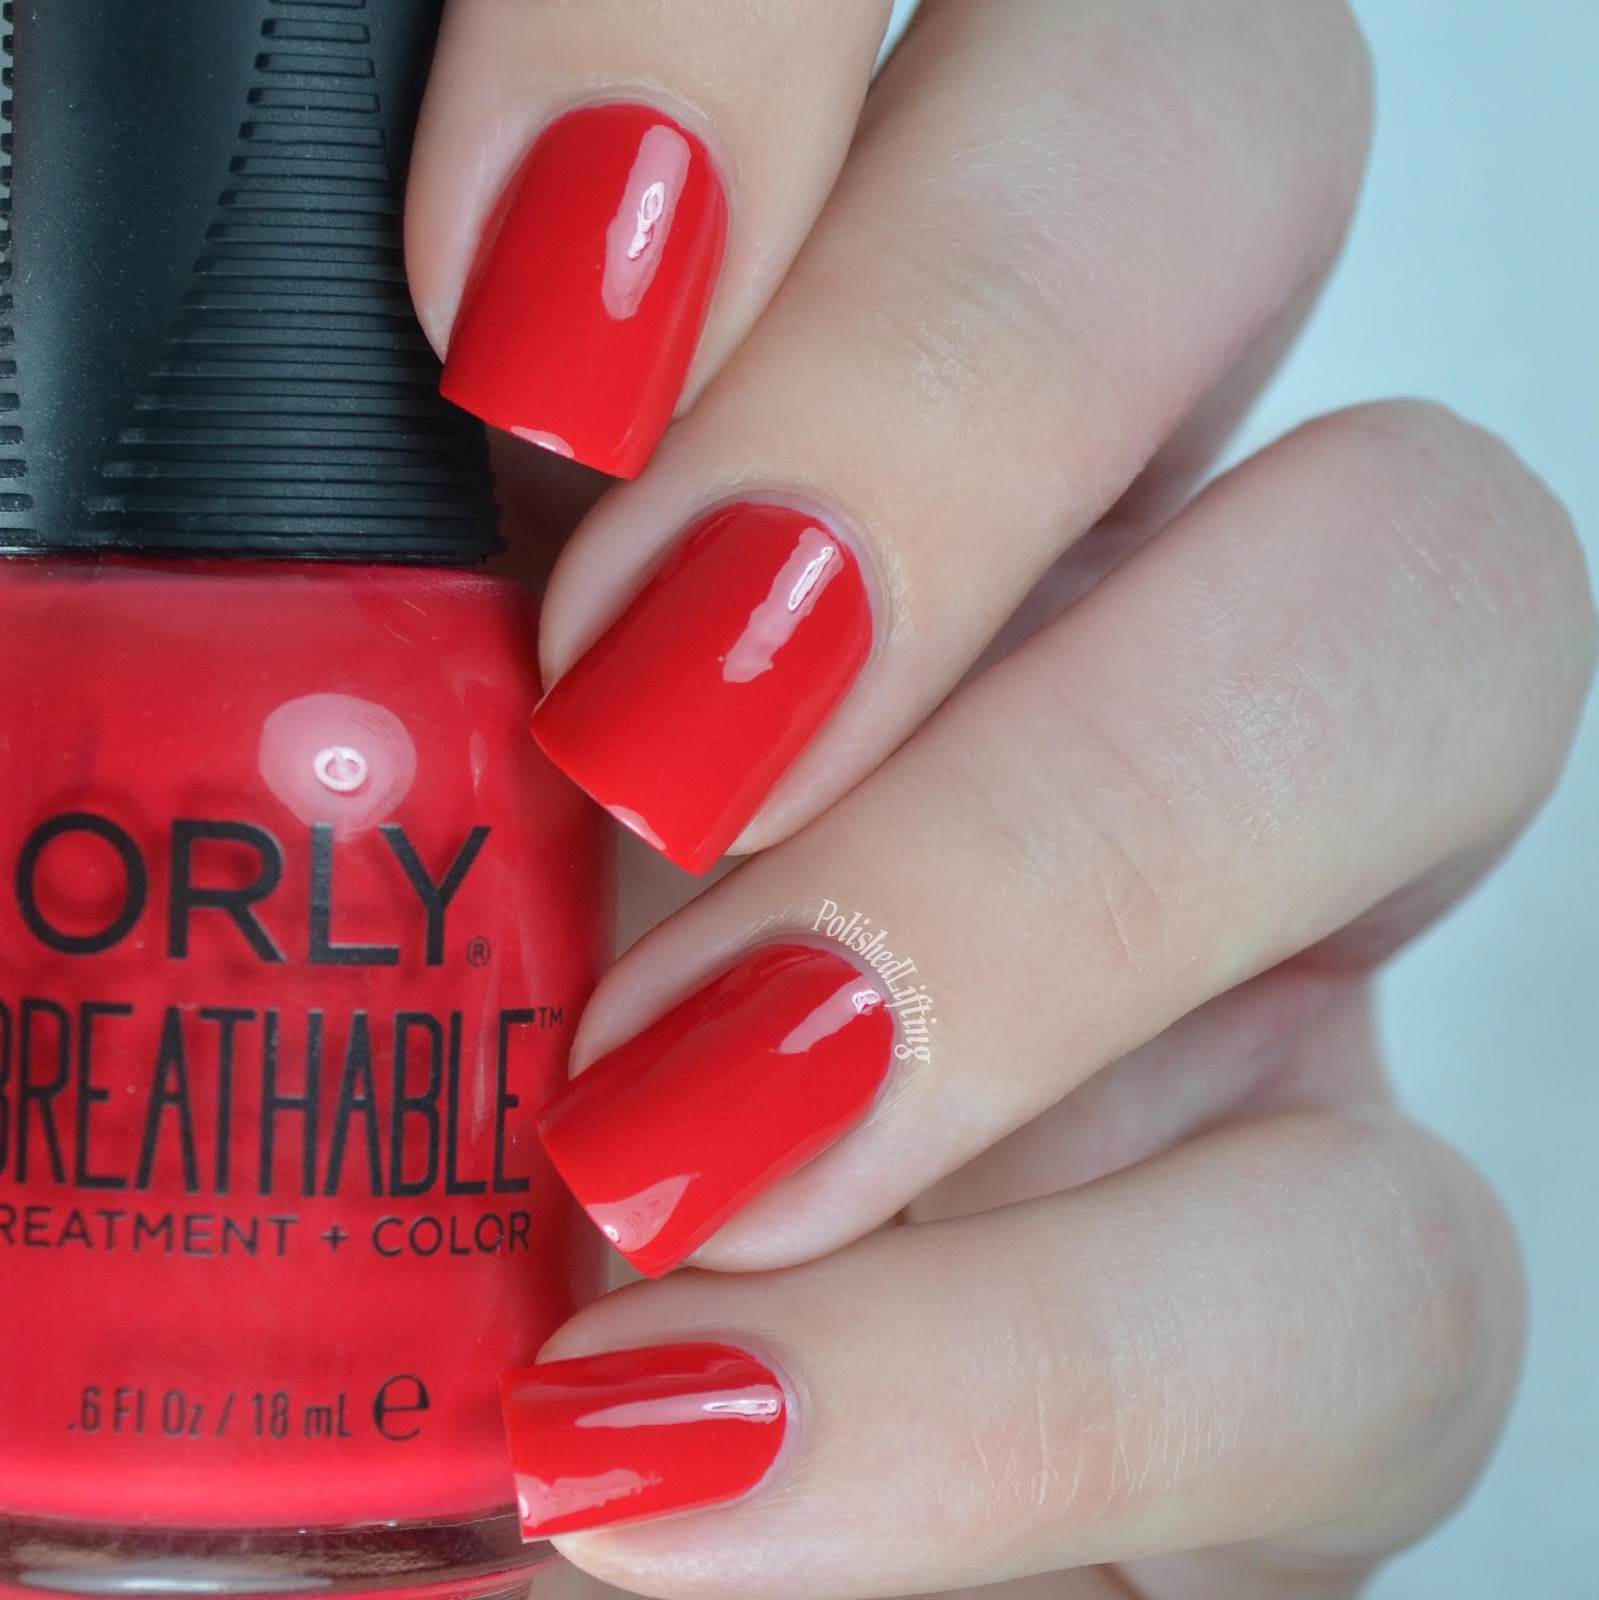 Polished Lifting: Orly Breathable Swatches & Nail Art